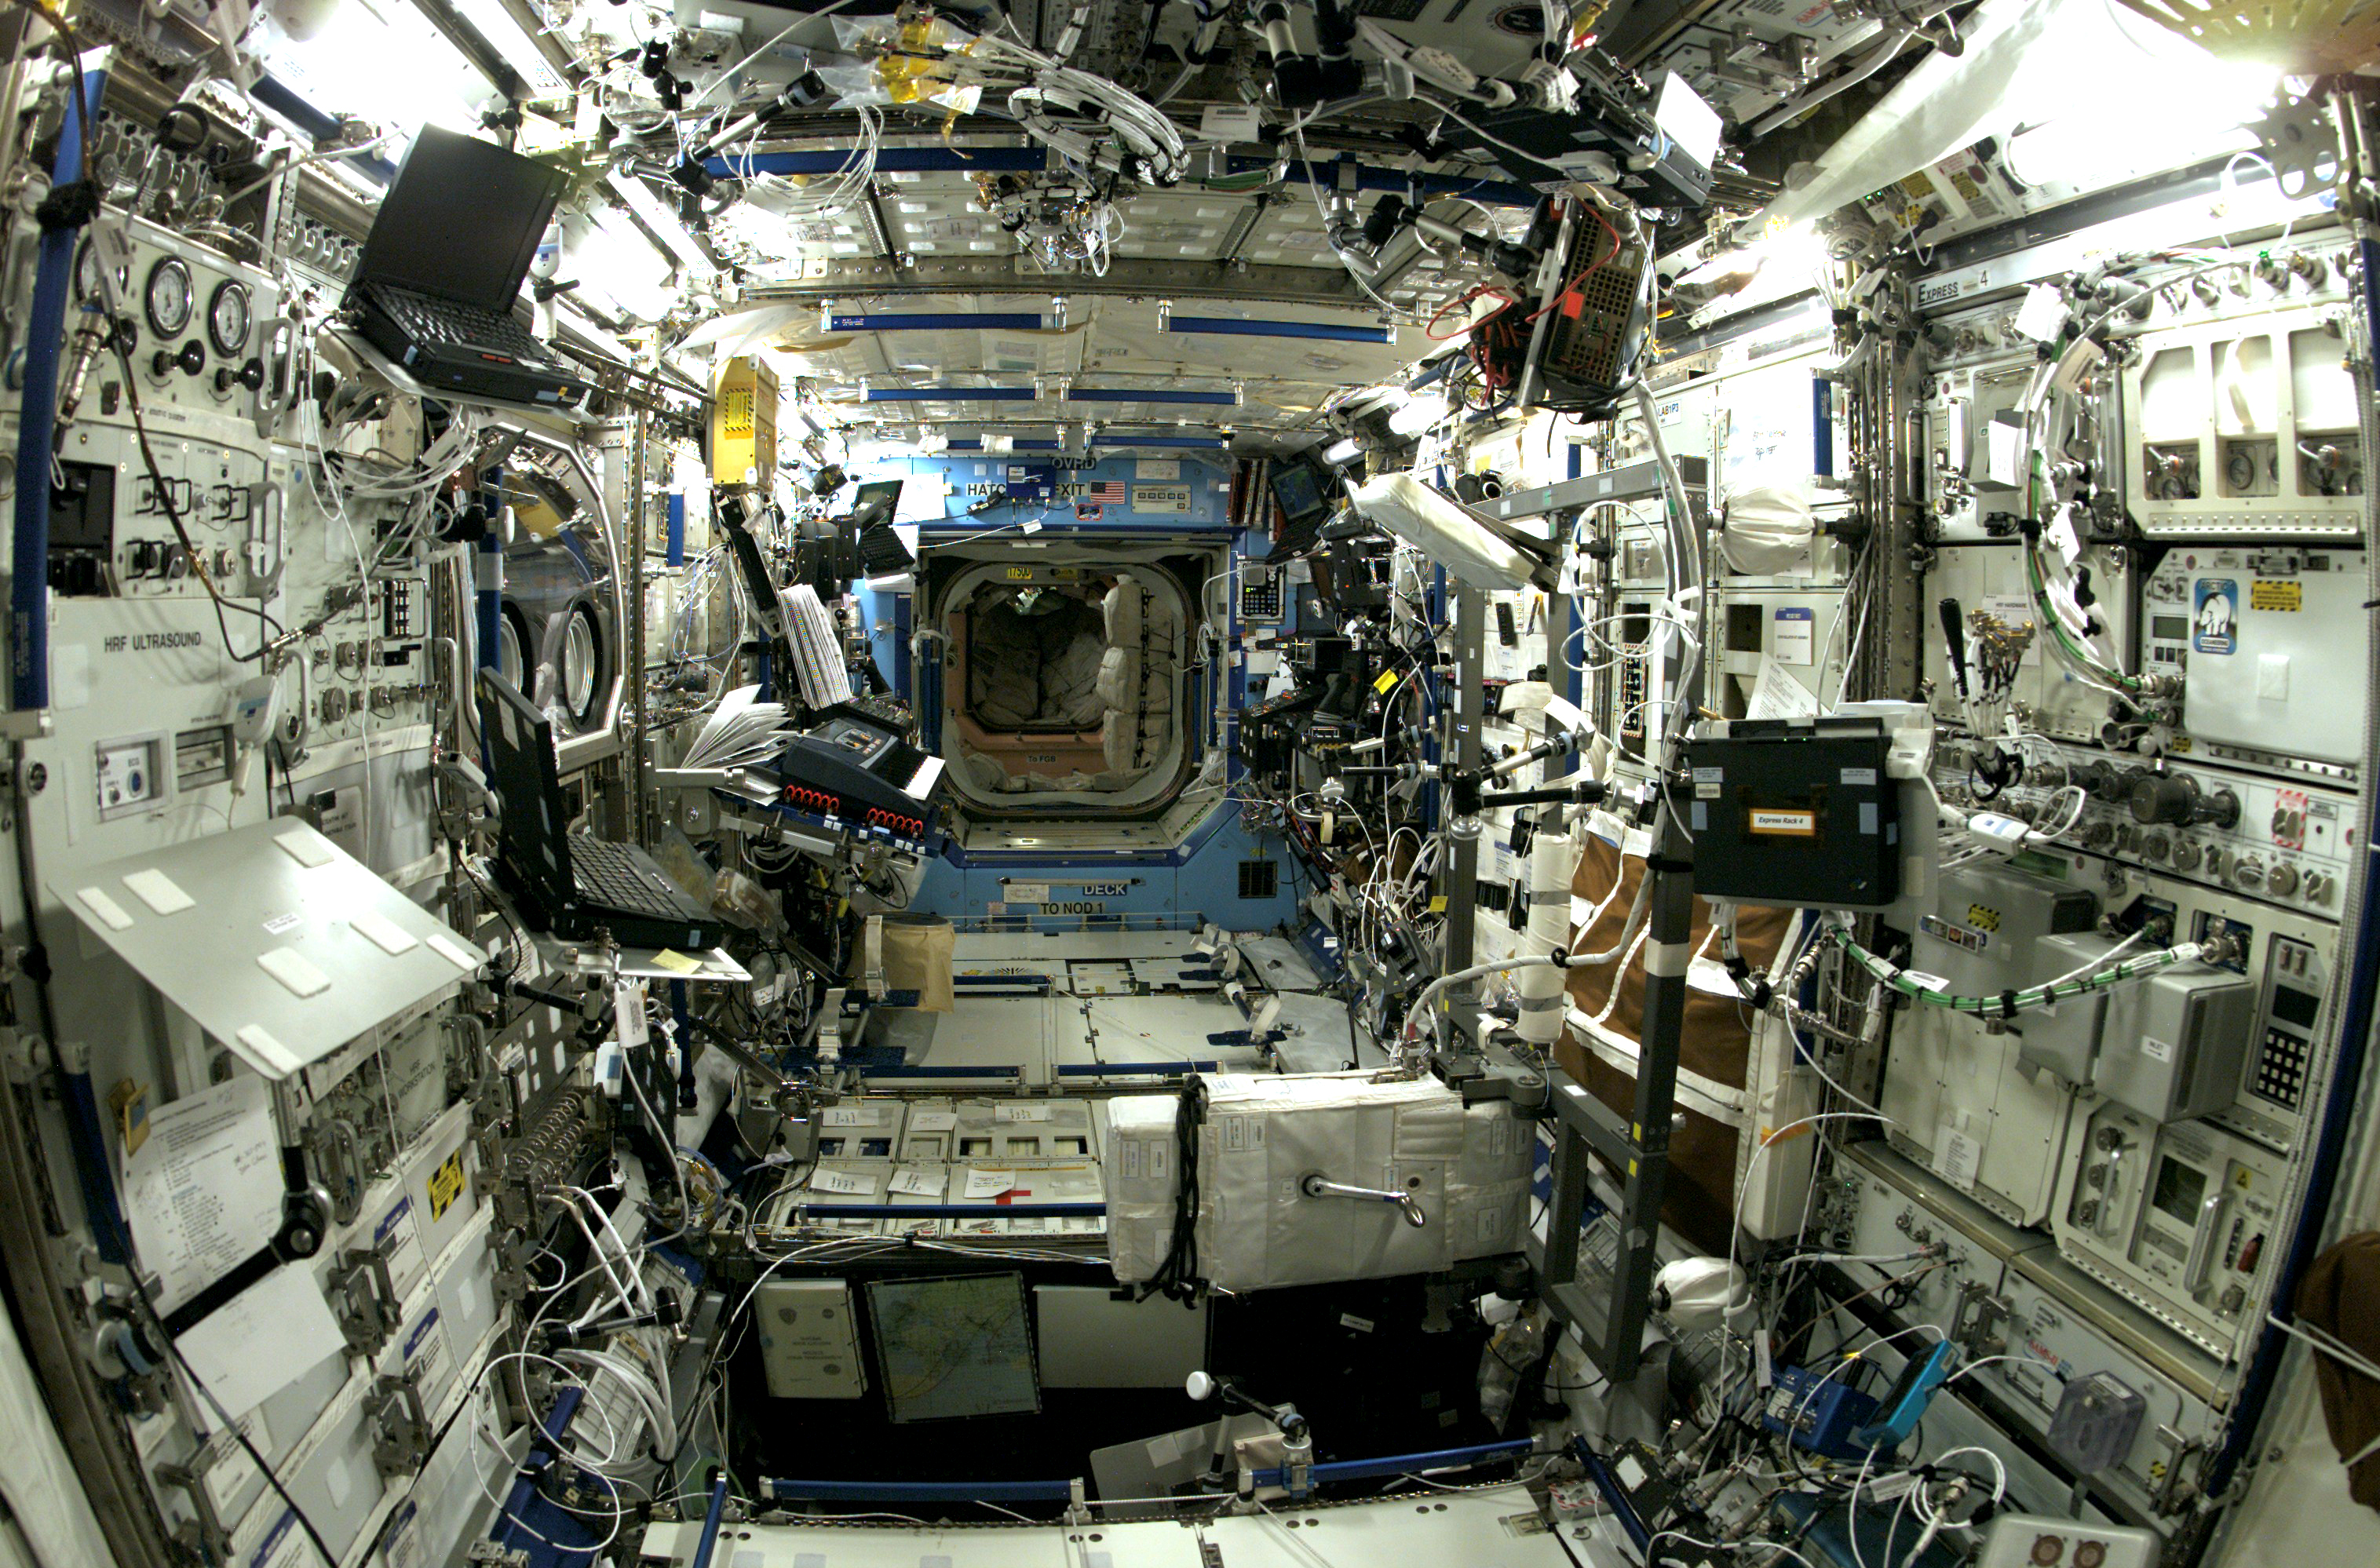 Space in Images - 2004 - 03 - inside ISS - ready for ...